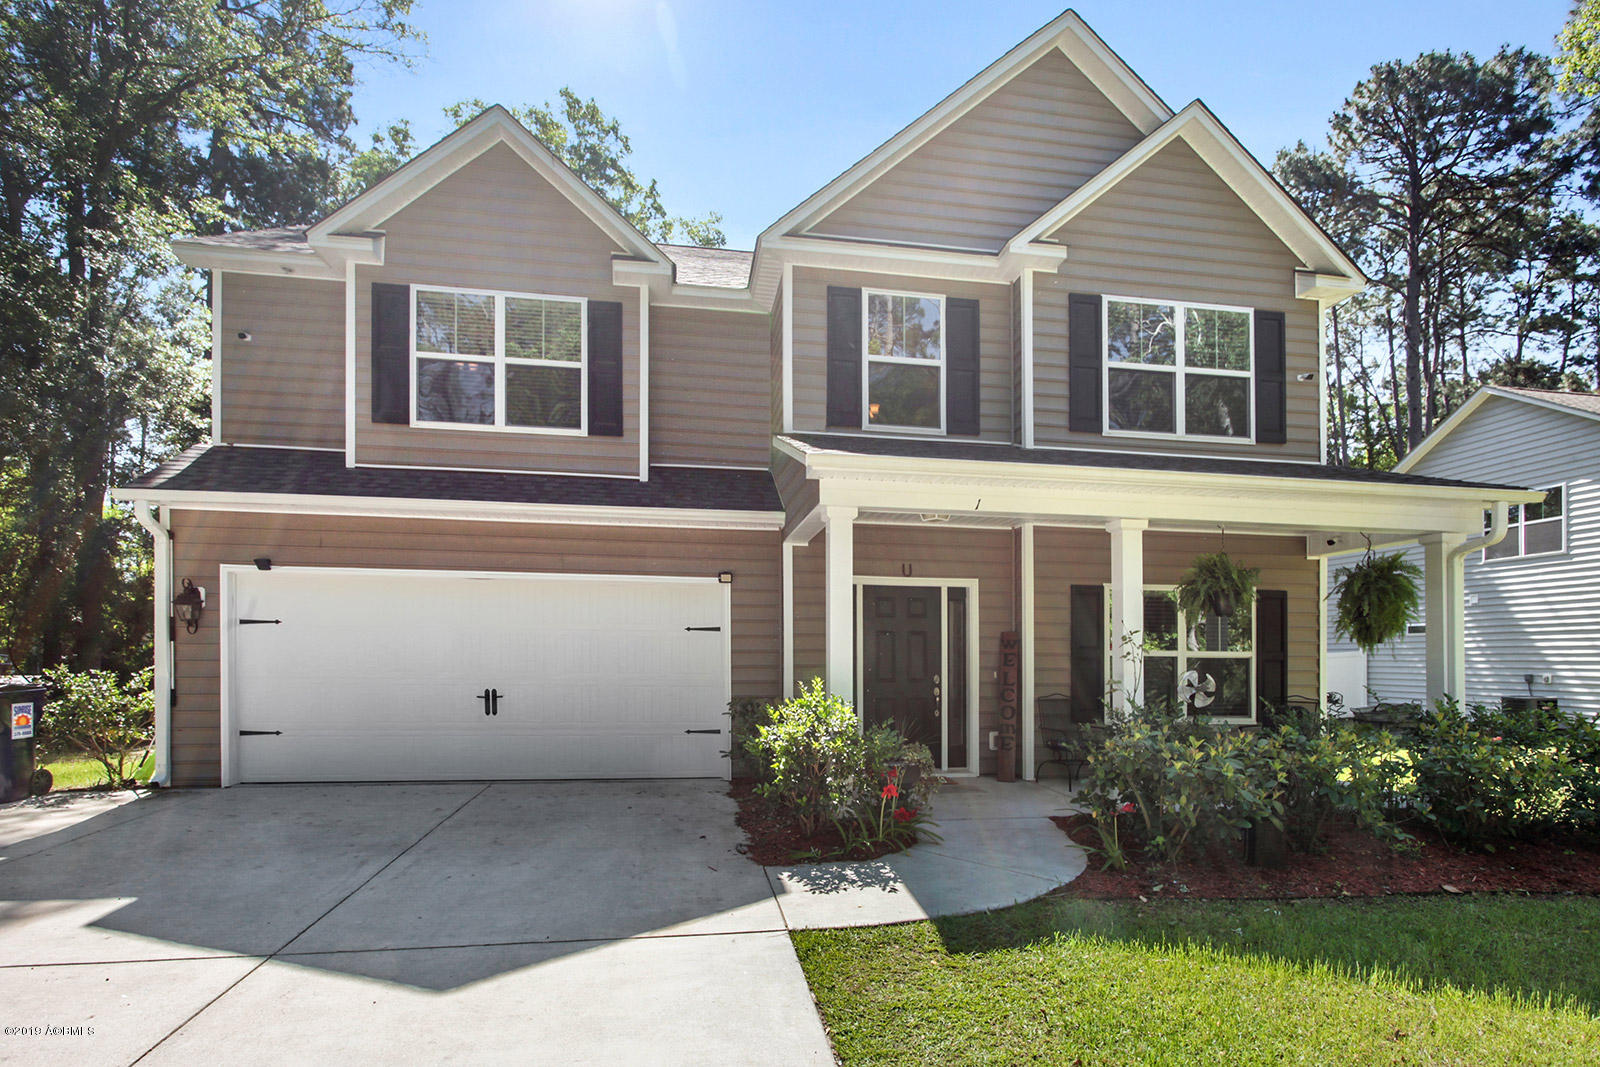 Photo of 1 St James Circle, Beaufort, SC 29907